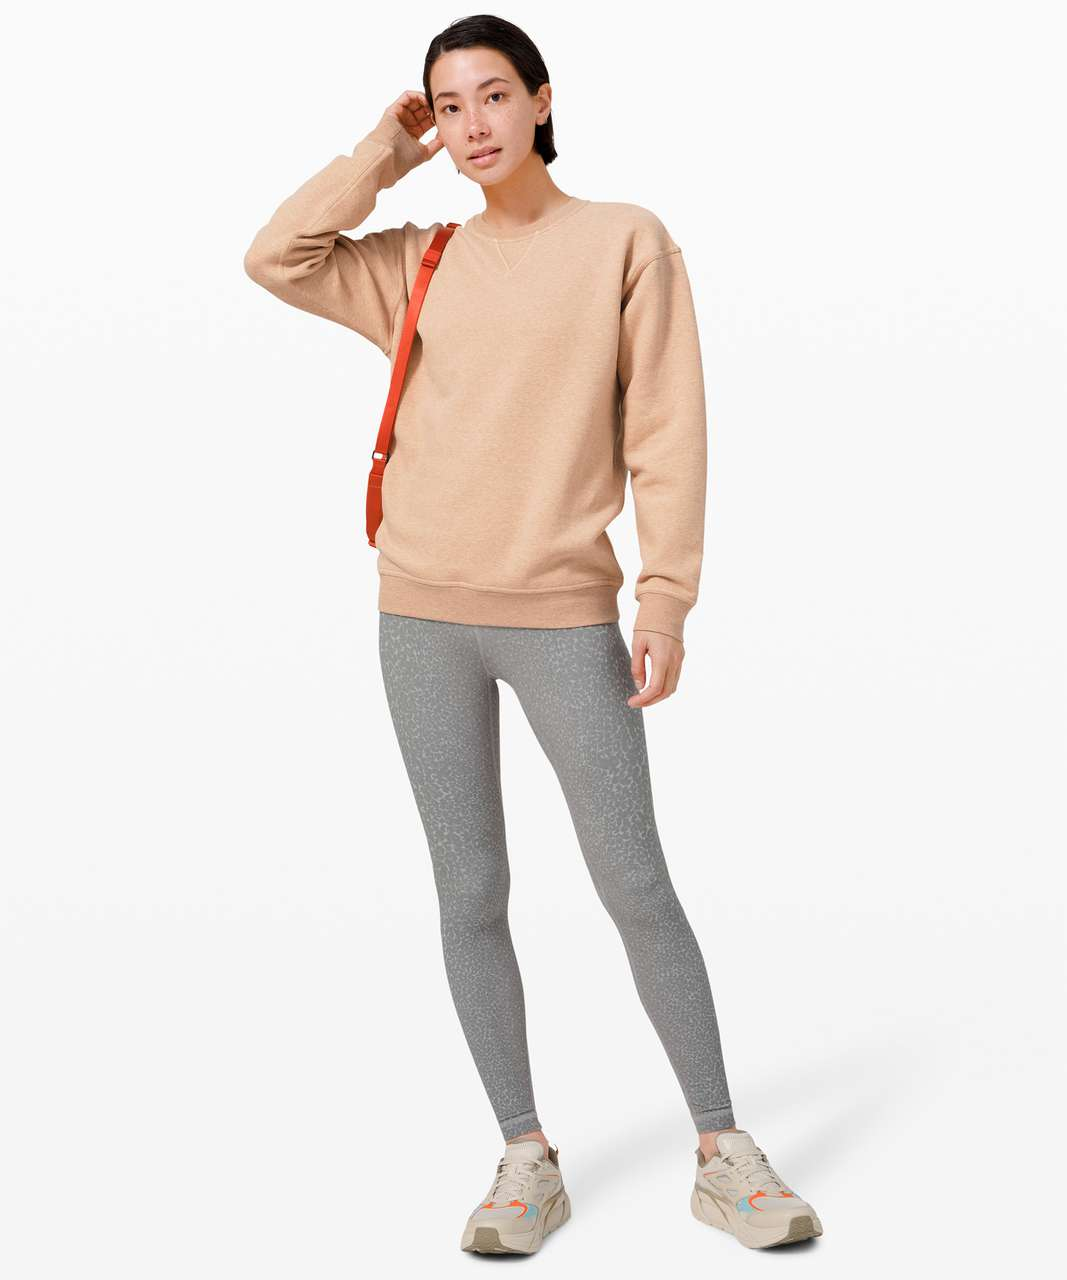 Lululemon All Yours Crew - Heathered Ivory Peach